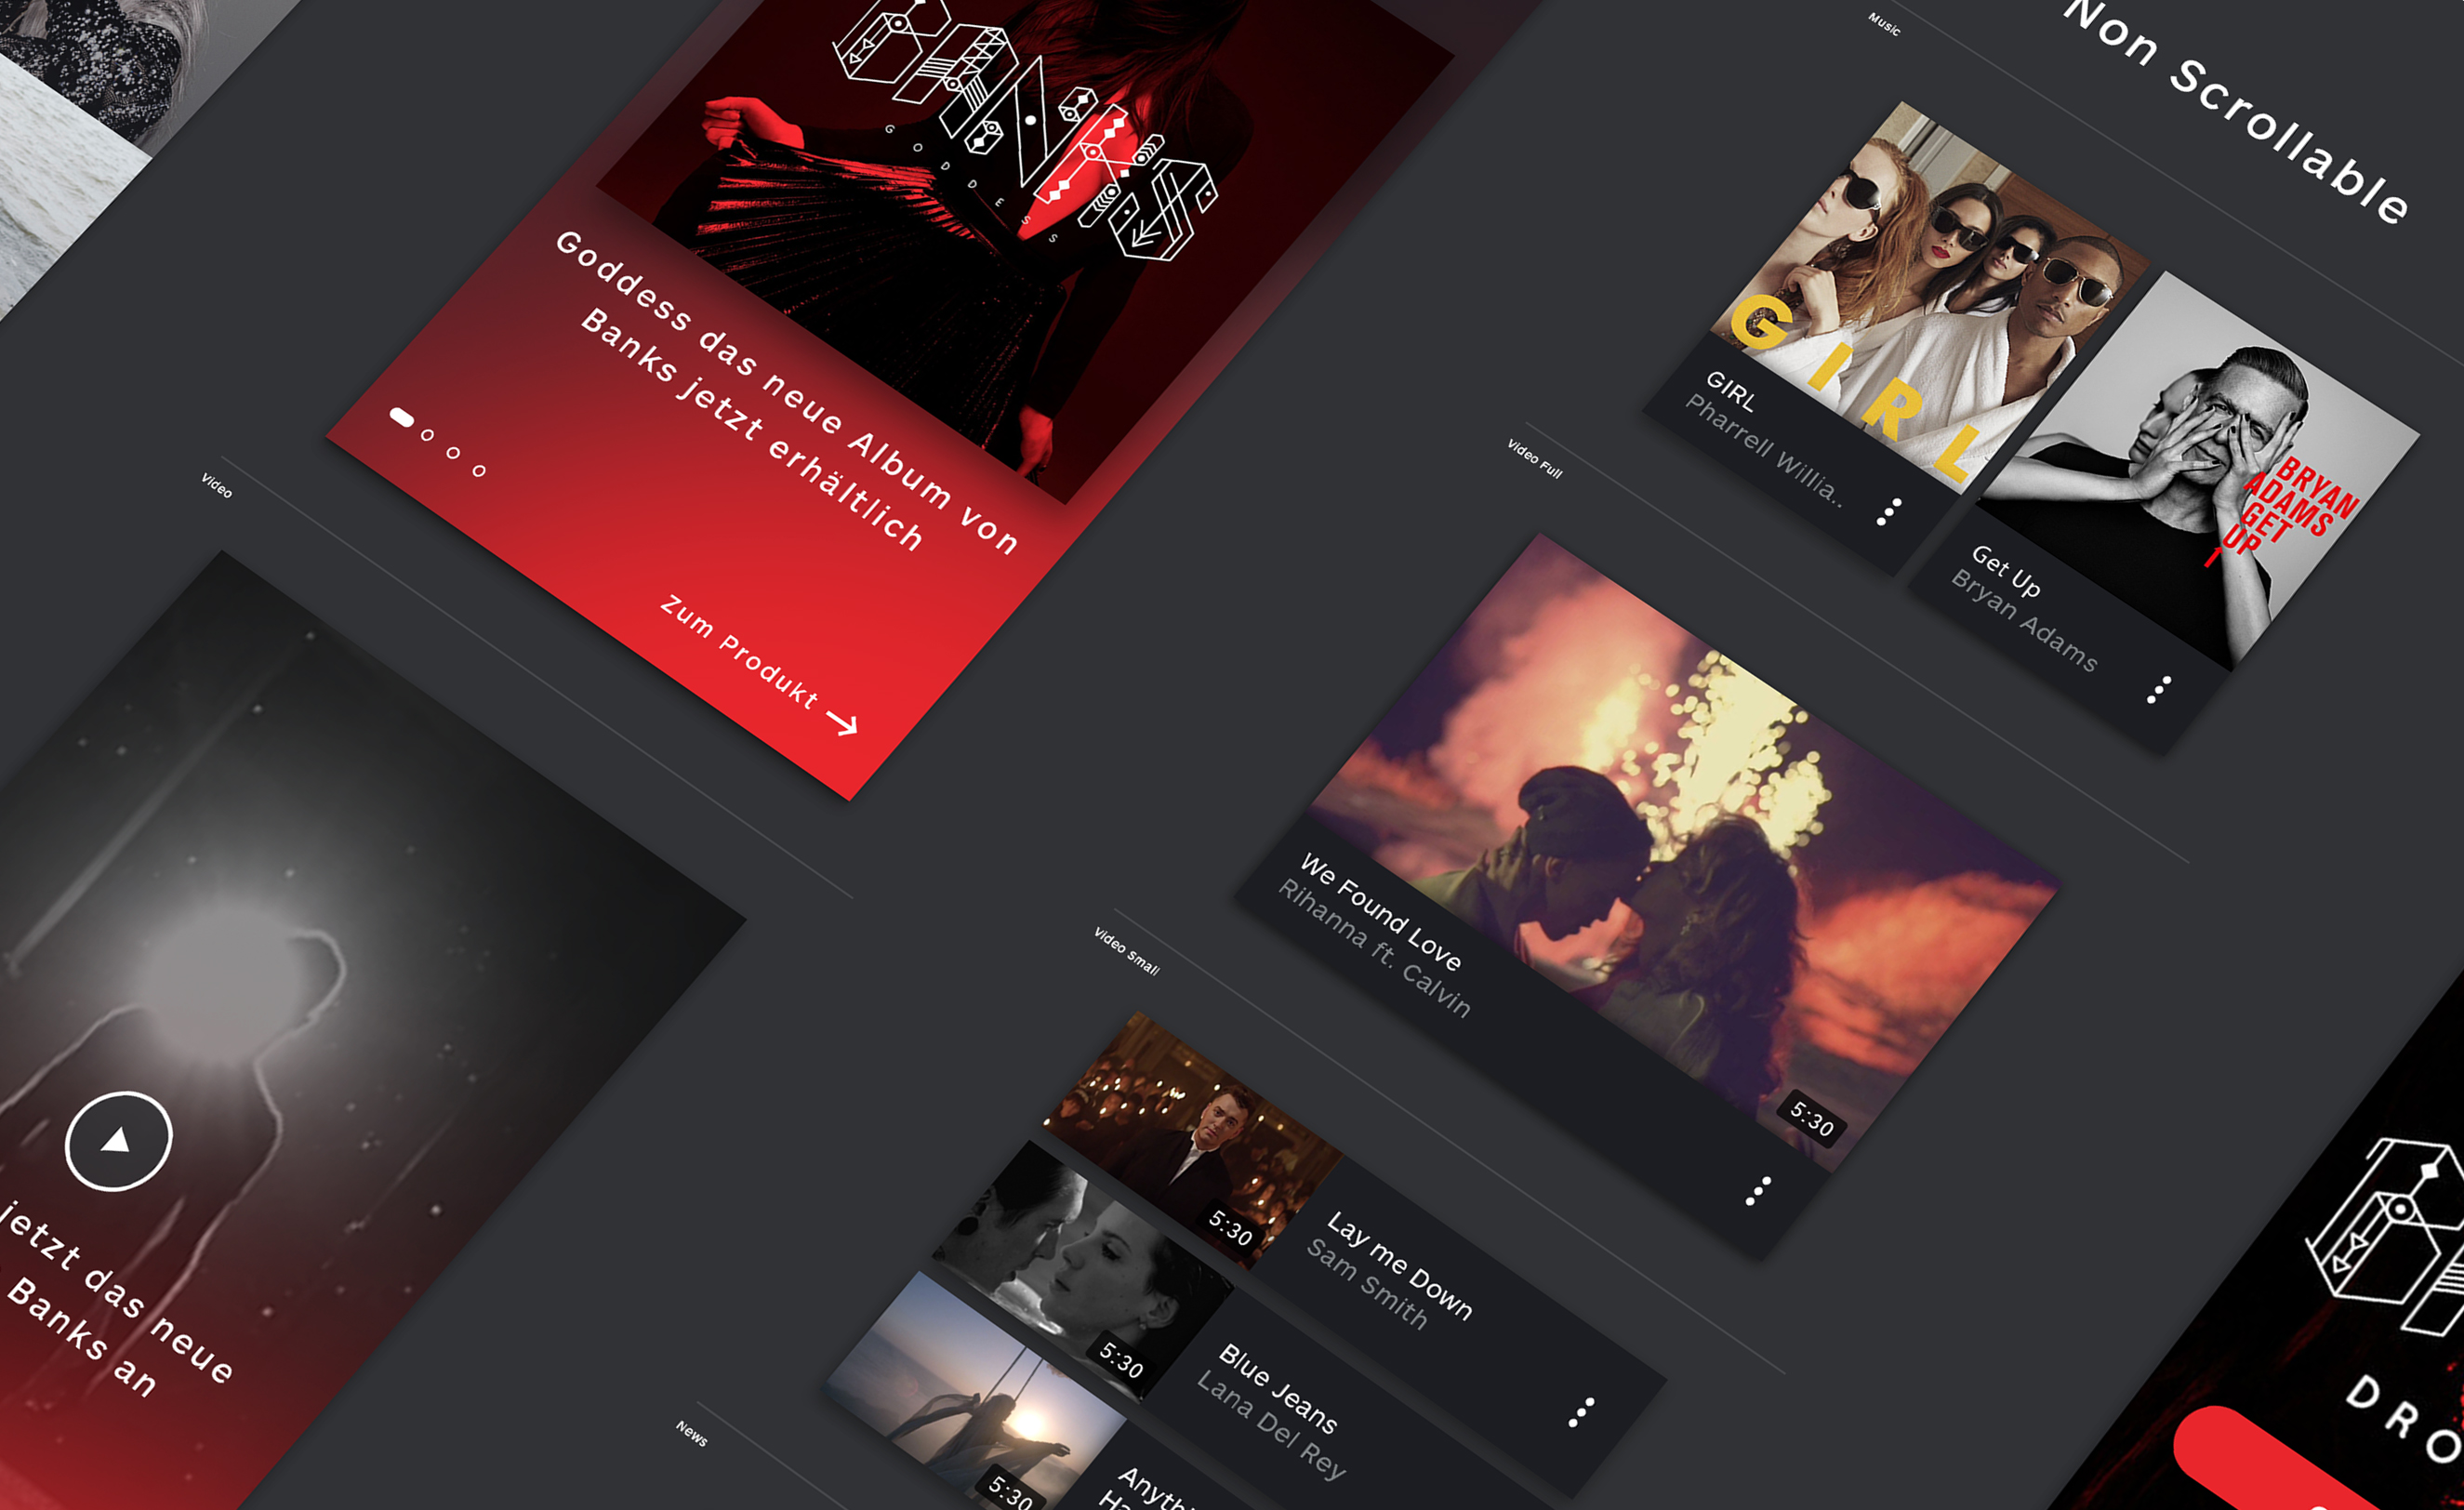 Isometric view on modules from Universal-Music Group Germany